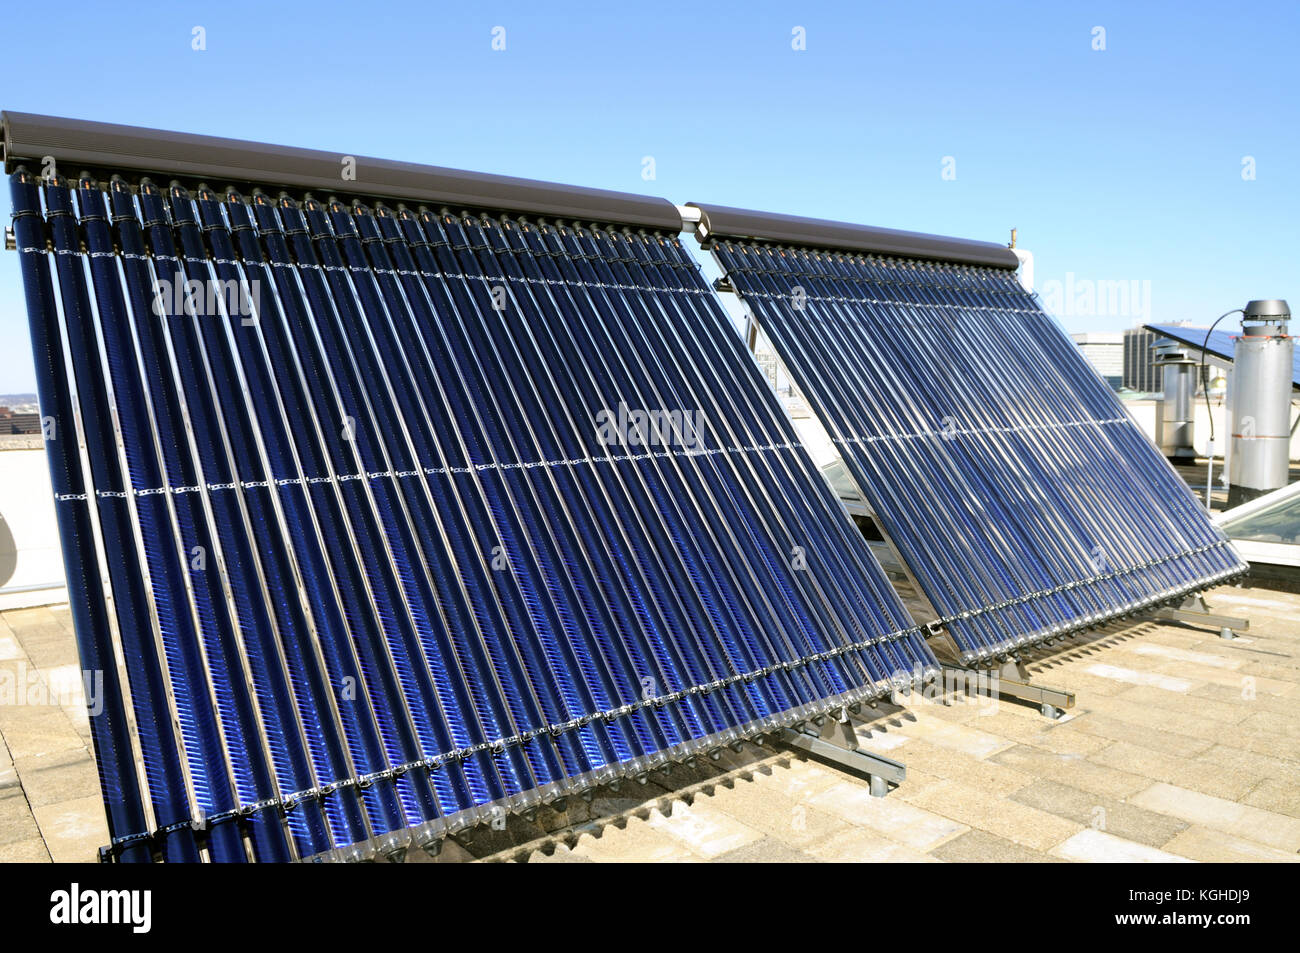 Evacuated tube solar collector panels on rooftop Stock Photo